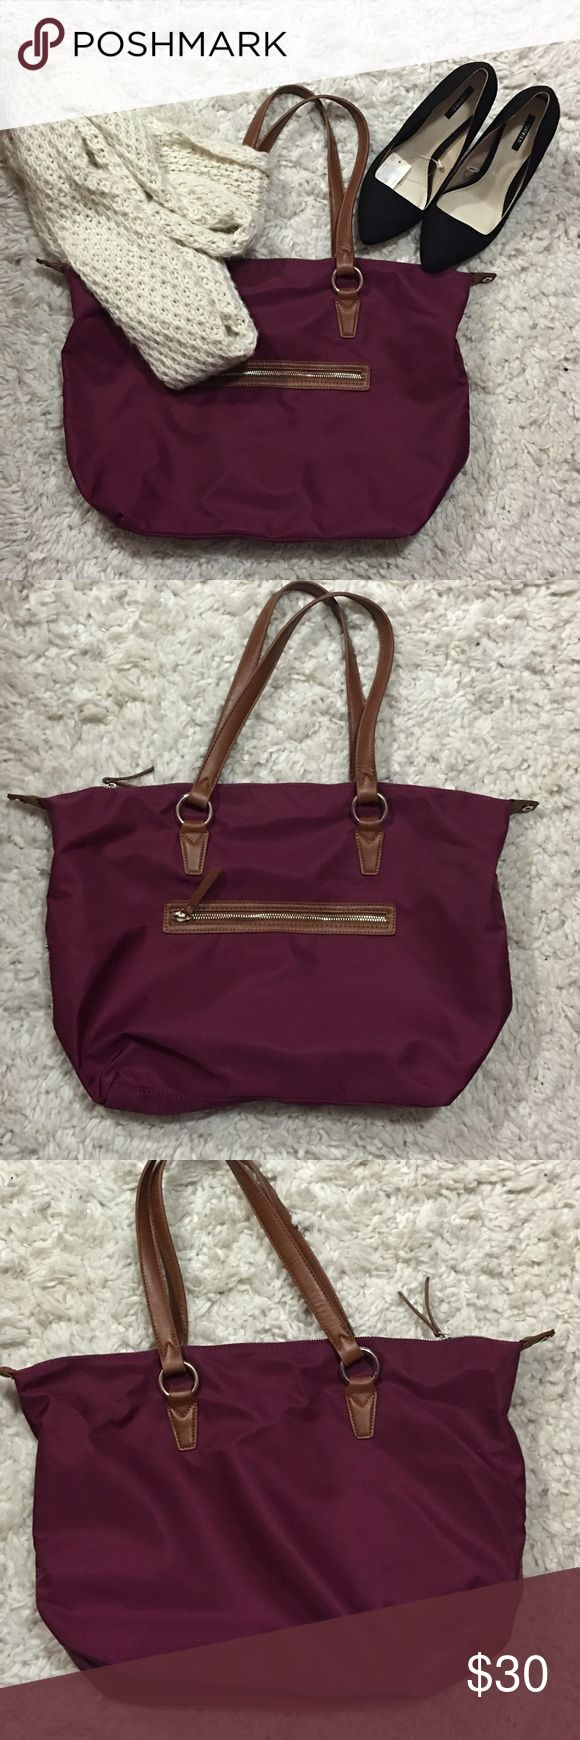 Nylon Handbag Bought this from JC Penny ( listed for exposure) about 4 years ago. it's a deep magenta color with brown straps. It's a big bag can use for school or work will hold all your things. At the end carries a part where you can snap the end to the bag depending on your style! Longchamp Bags Shoulder Bags